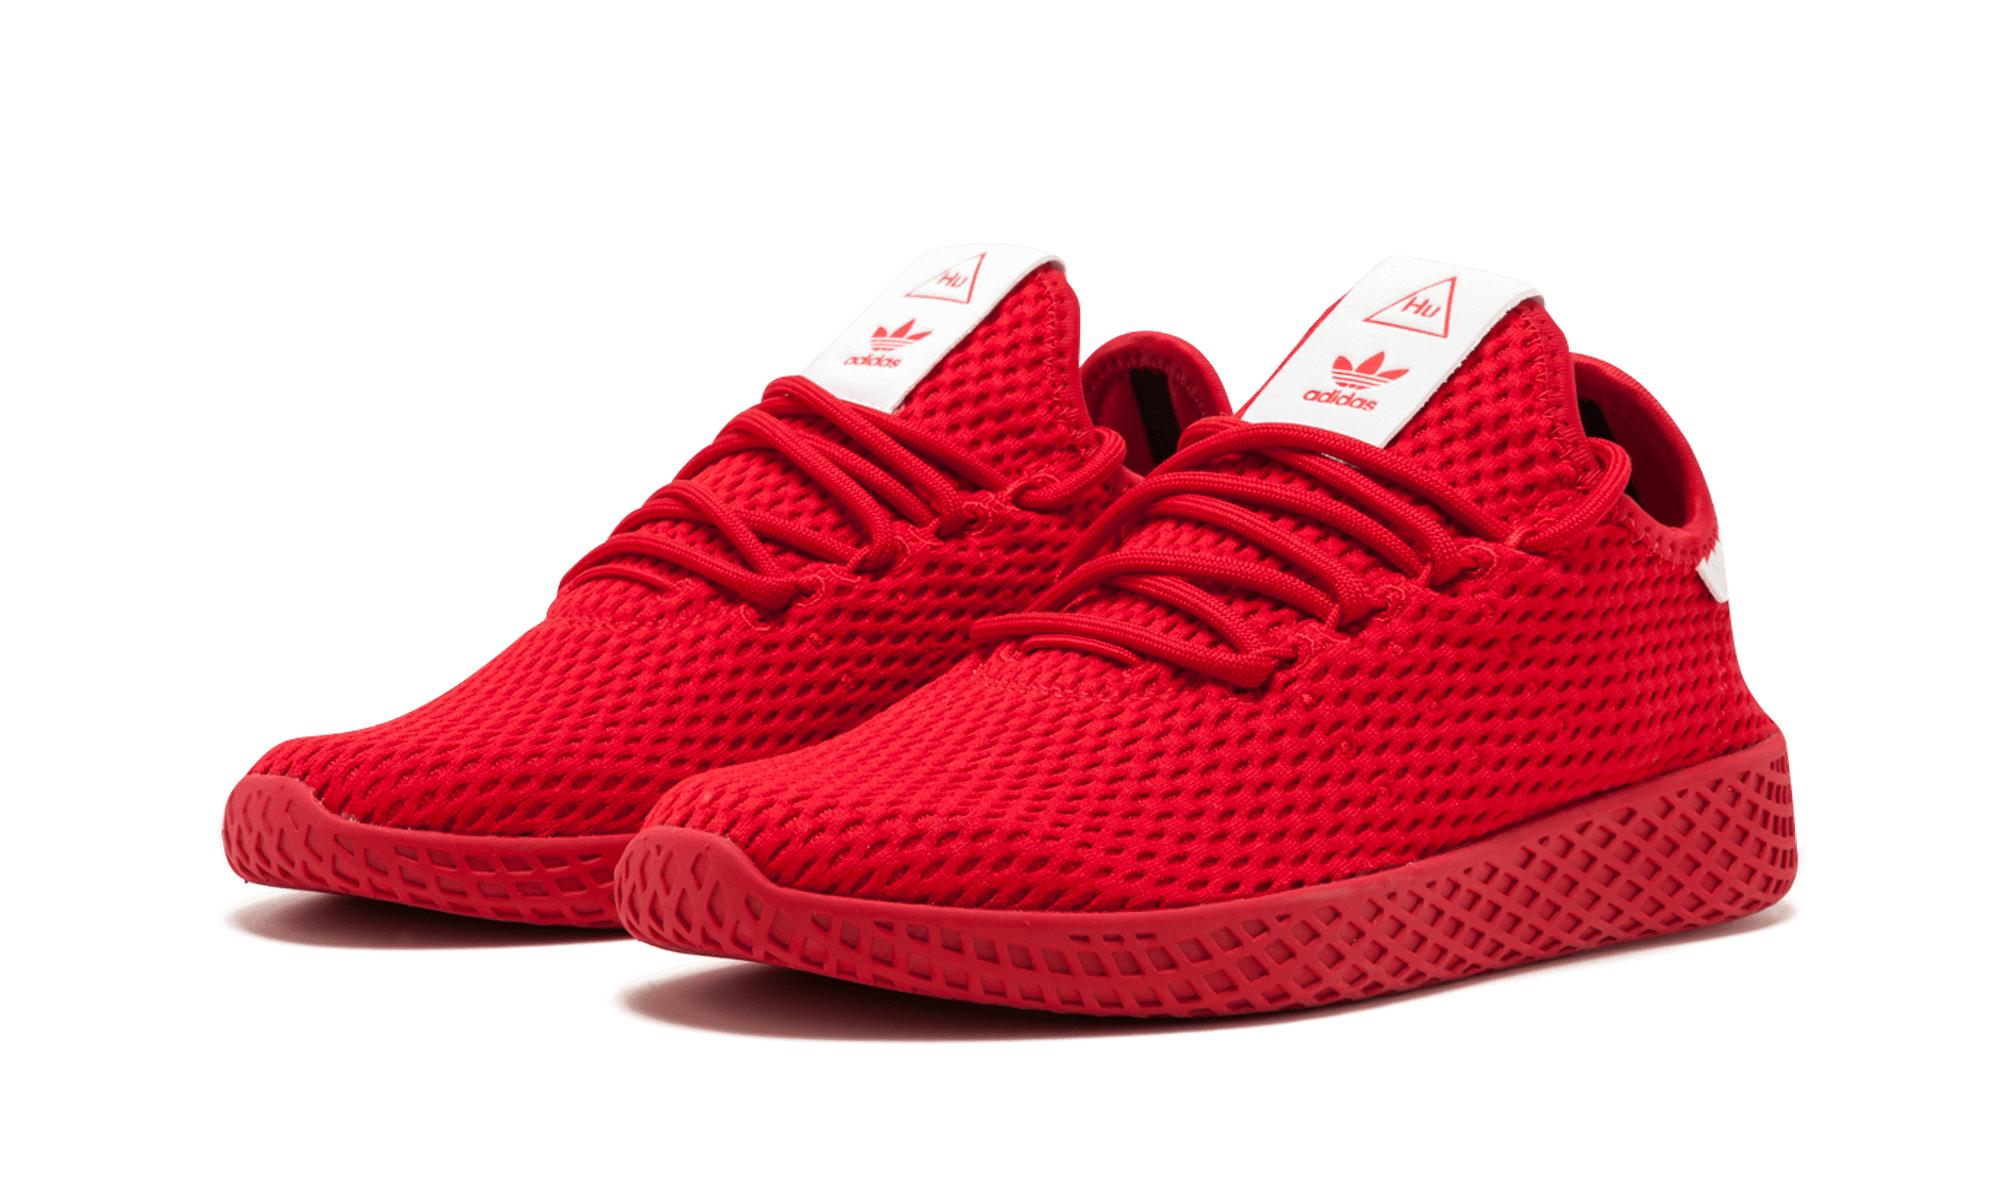 8ba4432da adidas Pw Tennis Hu Core Red in Red for Men - Save 53% - Lyst